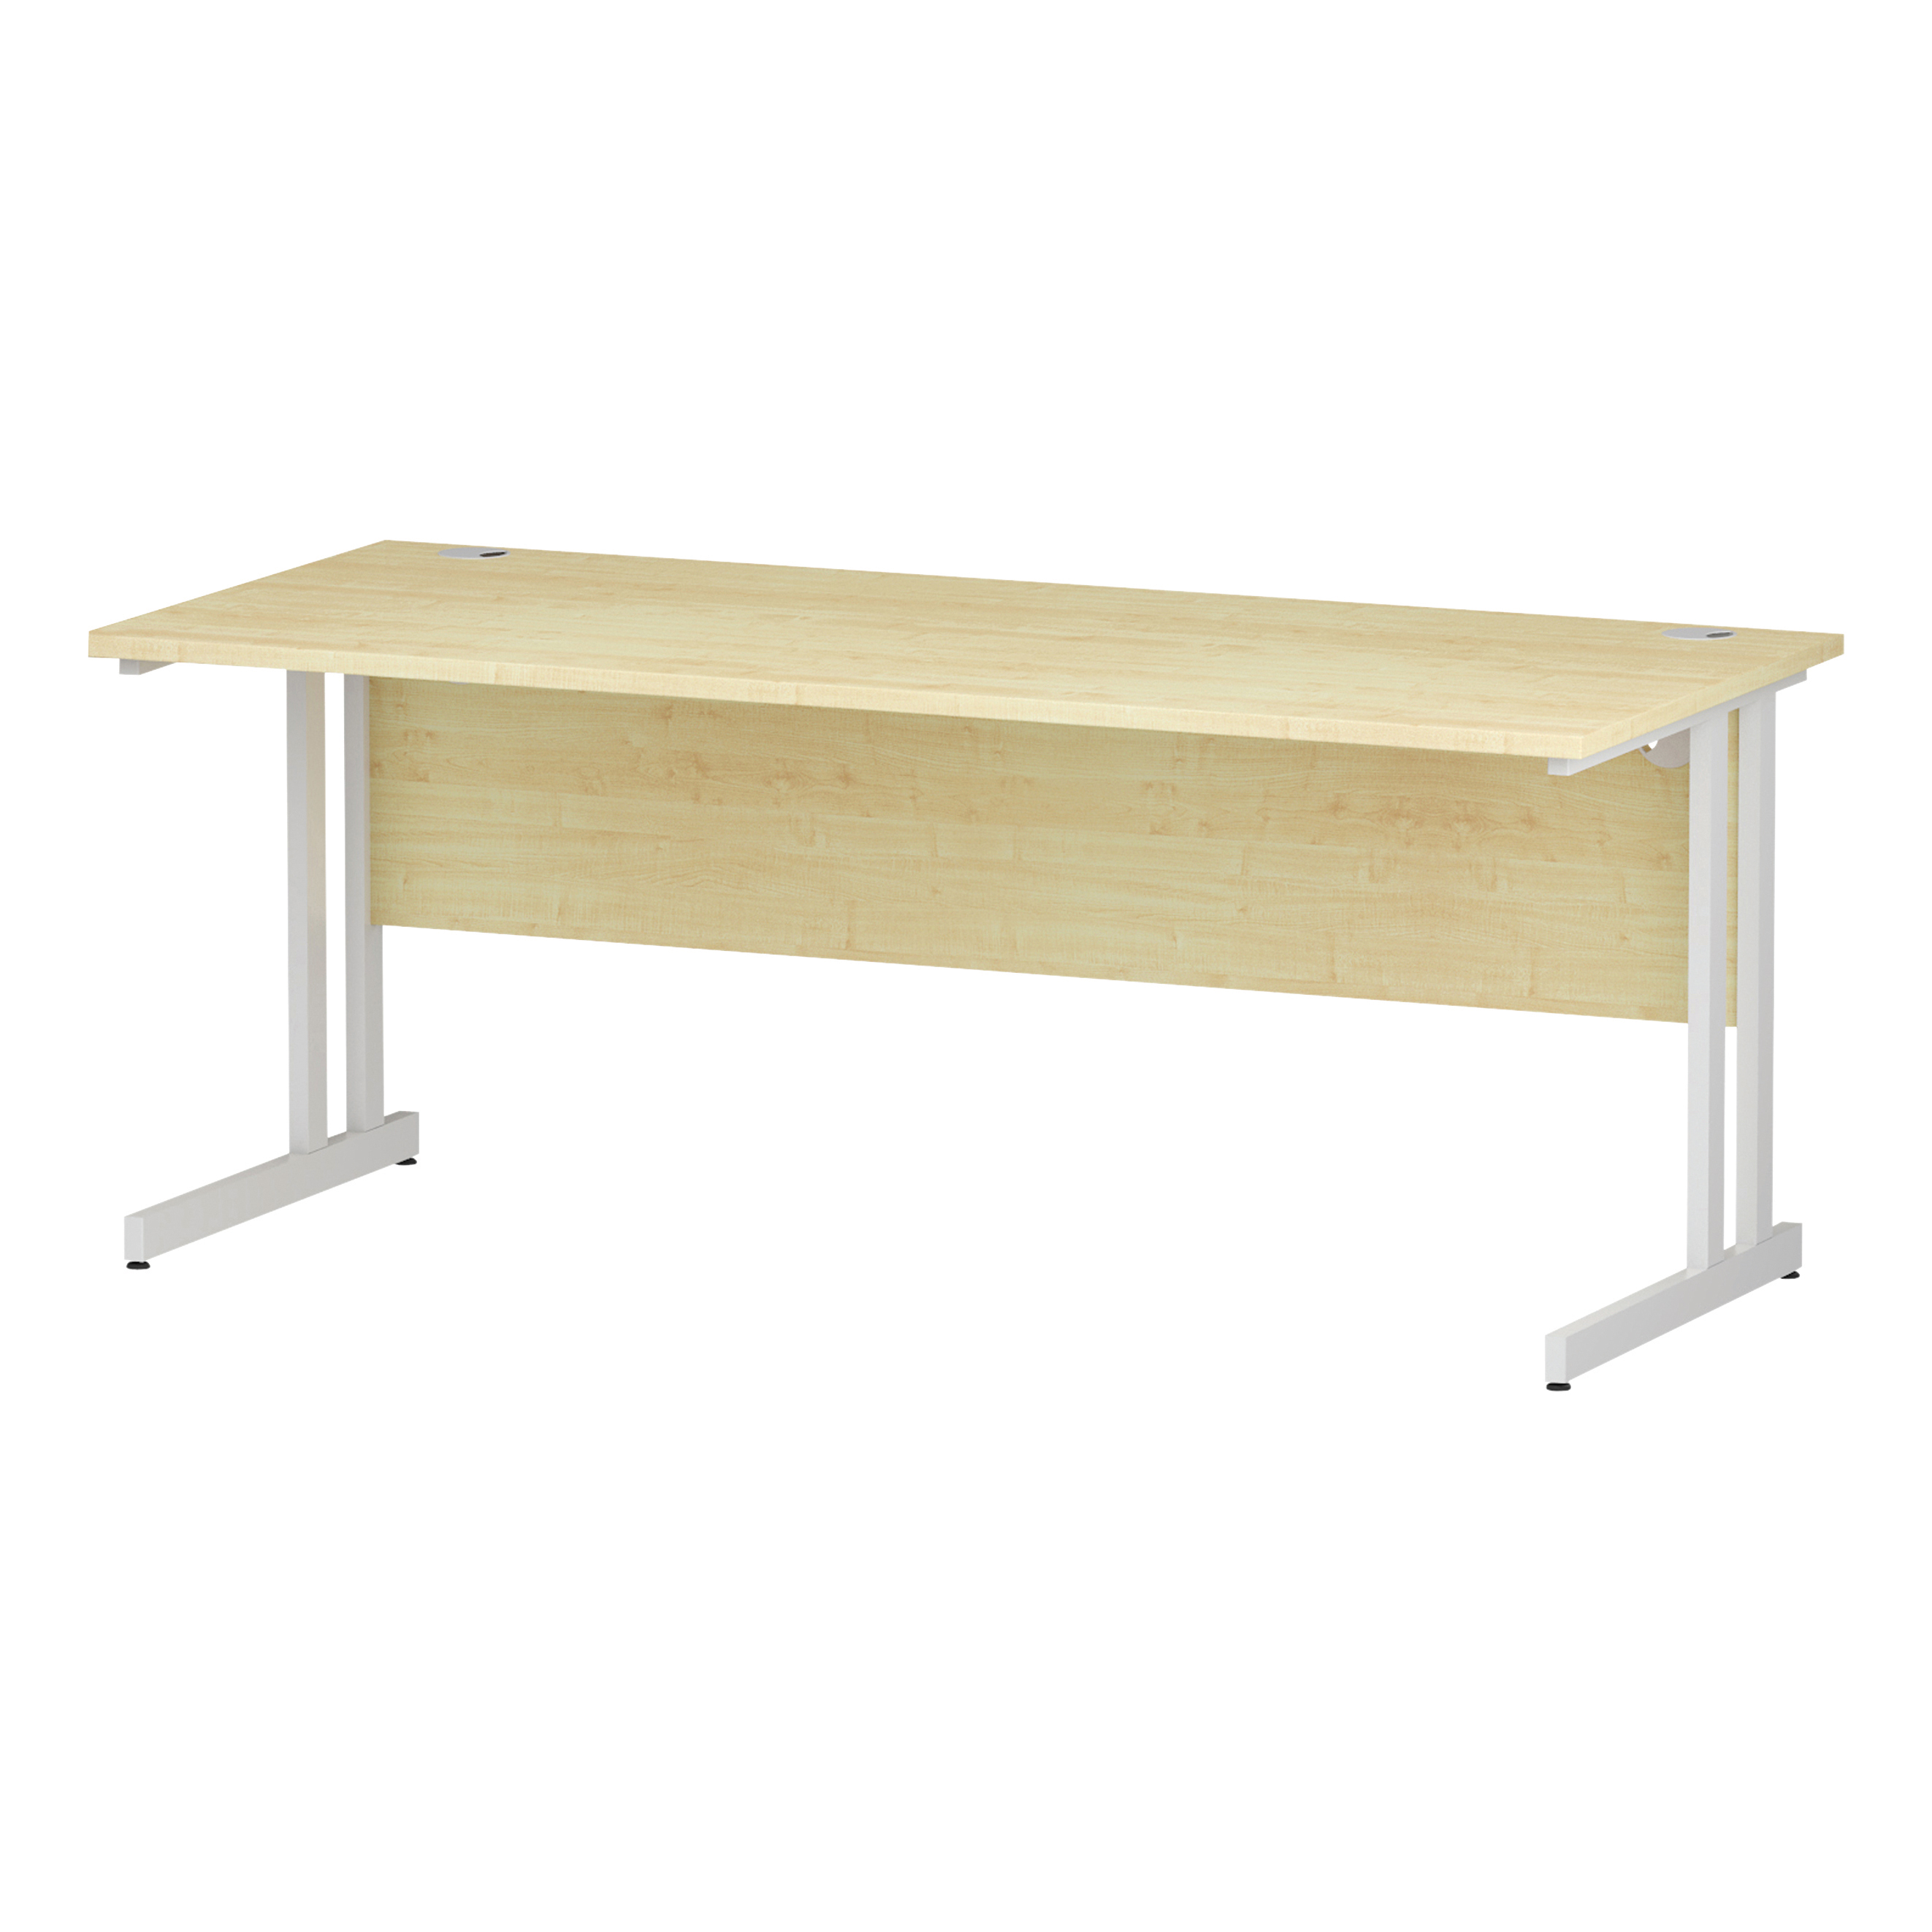 Trexus Rectangular Desk White Cantilever Leg 1800x800mm Maple Ref I002420